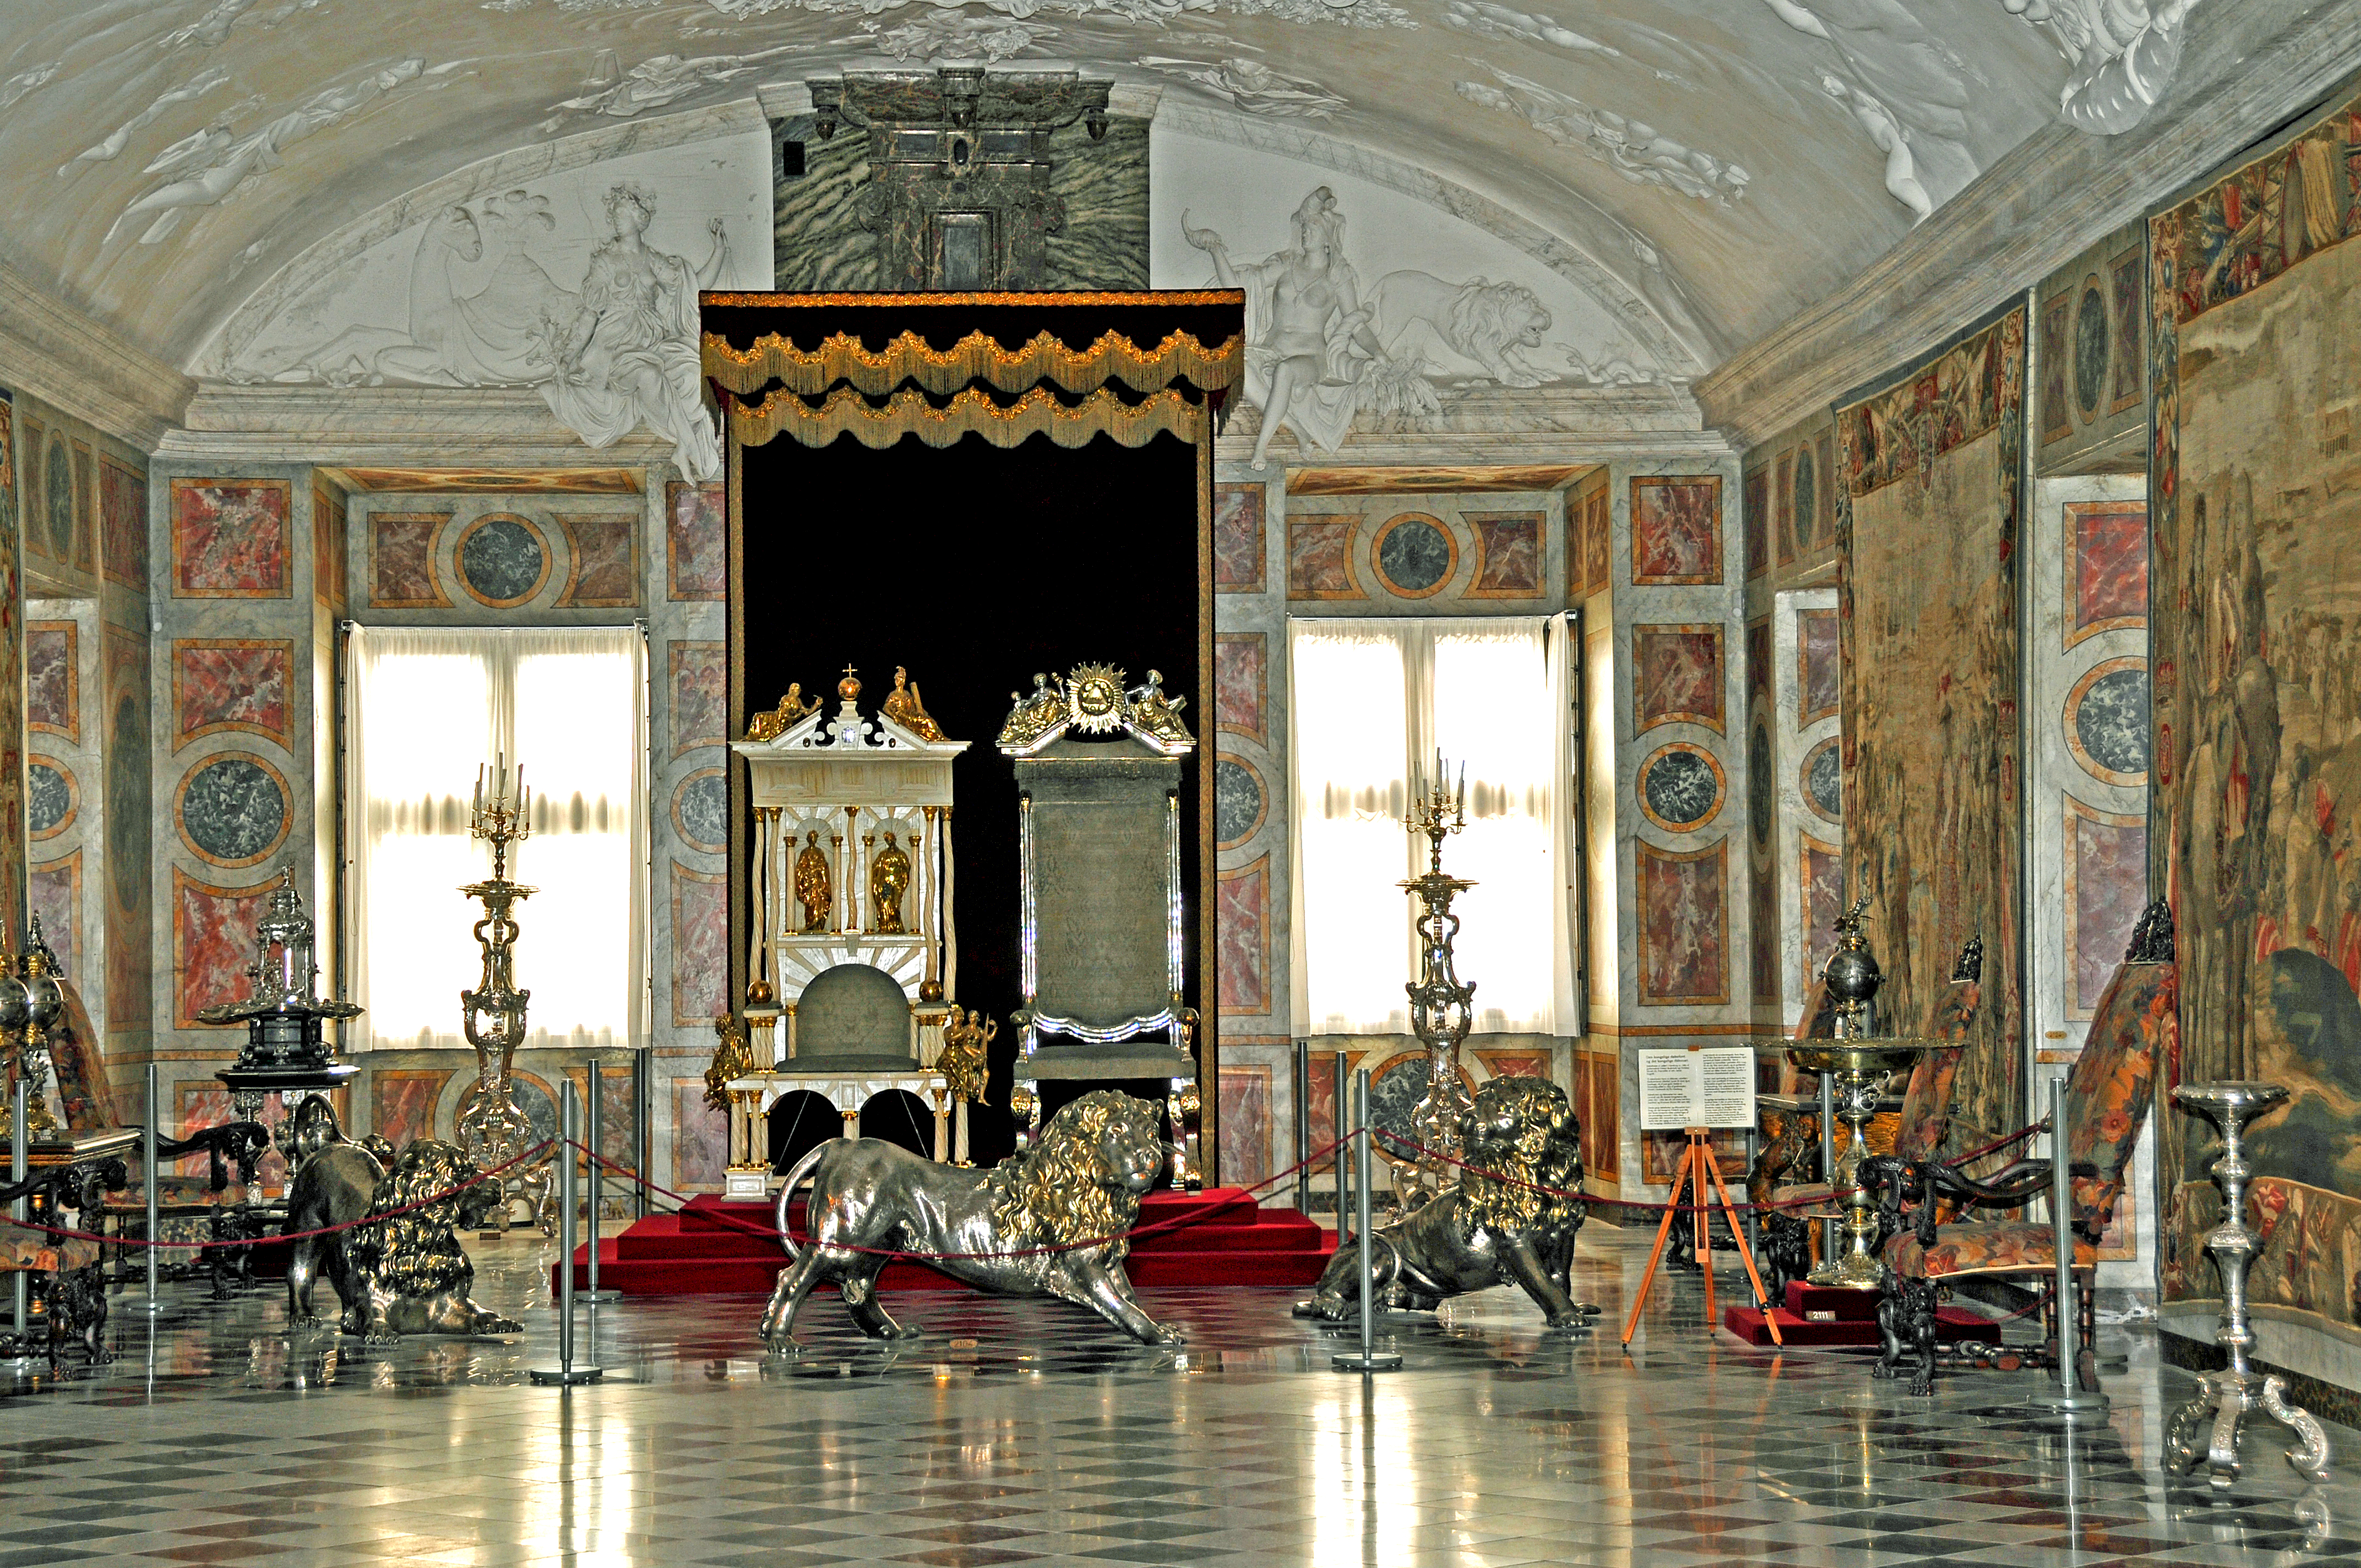 FileRosenborg Castle throne roomjpg Wikimedia Commons : RosenborgCastle throneroom from commons.wikimedia.org size 4288 x 2848 jpeg 12248kB